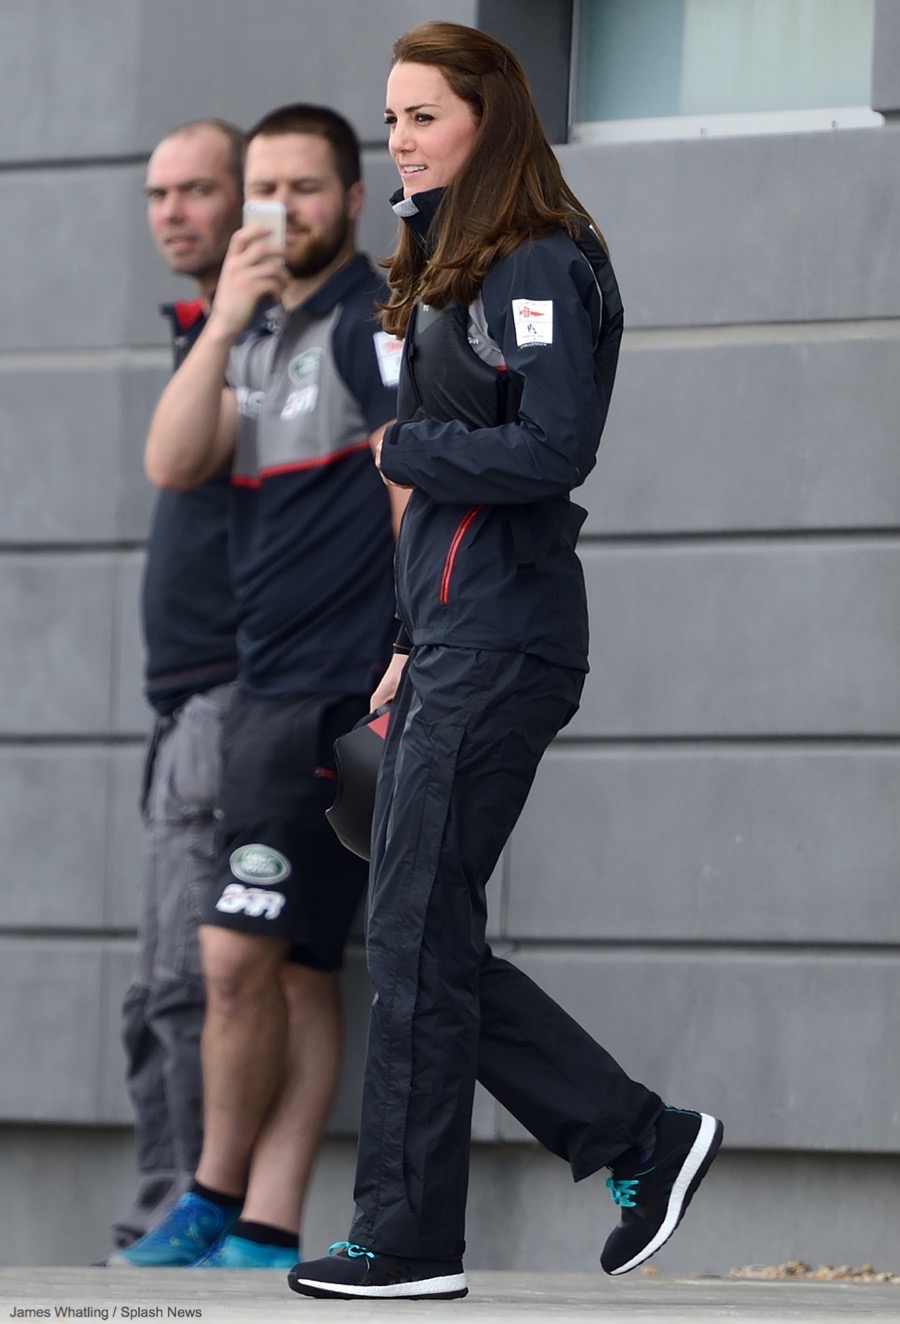 Kate Middleton wearing the Adidas Pureboost X Running Shoes